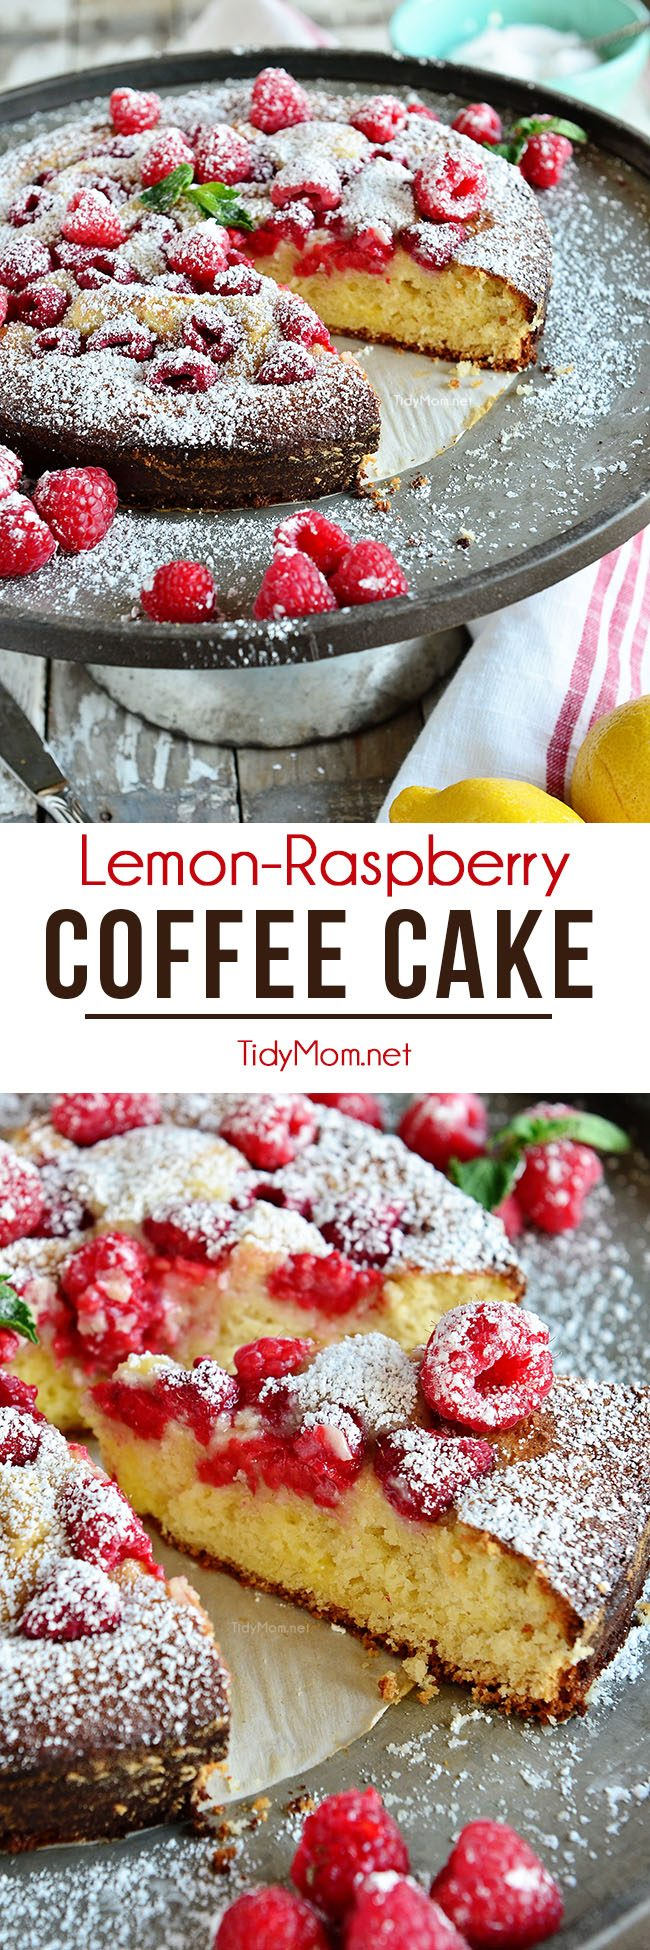 Lemon Raspberry Coffee Cake photo collage